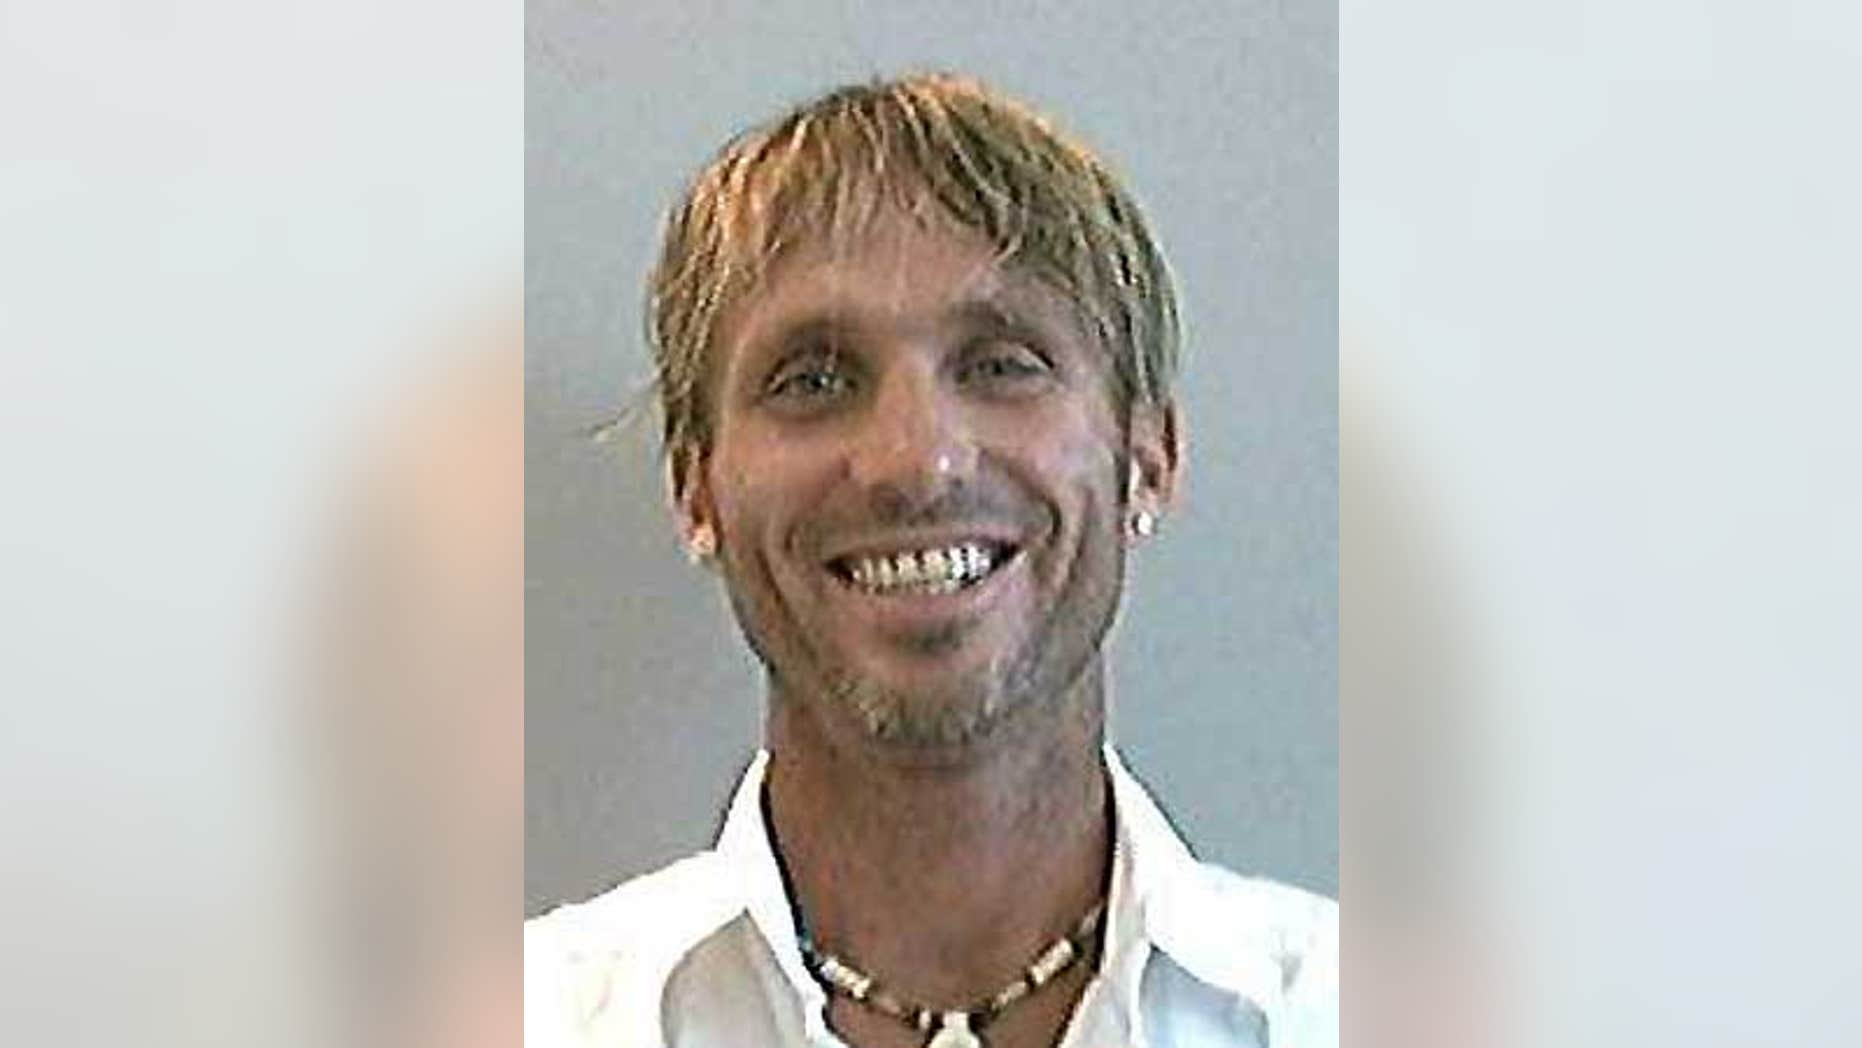 McCranie's name, picture and other personal information previously appeared on the Florida state sex offender Web site.